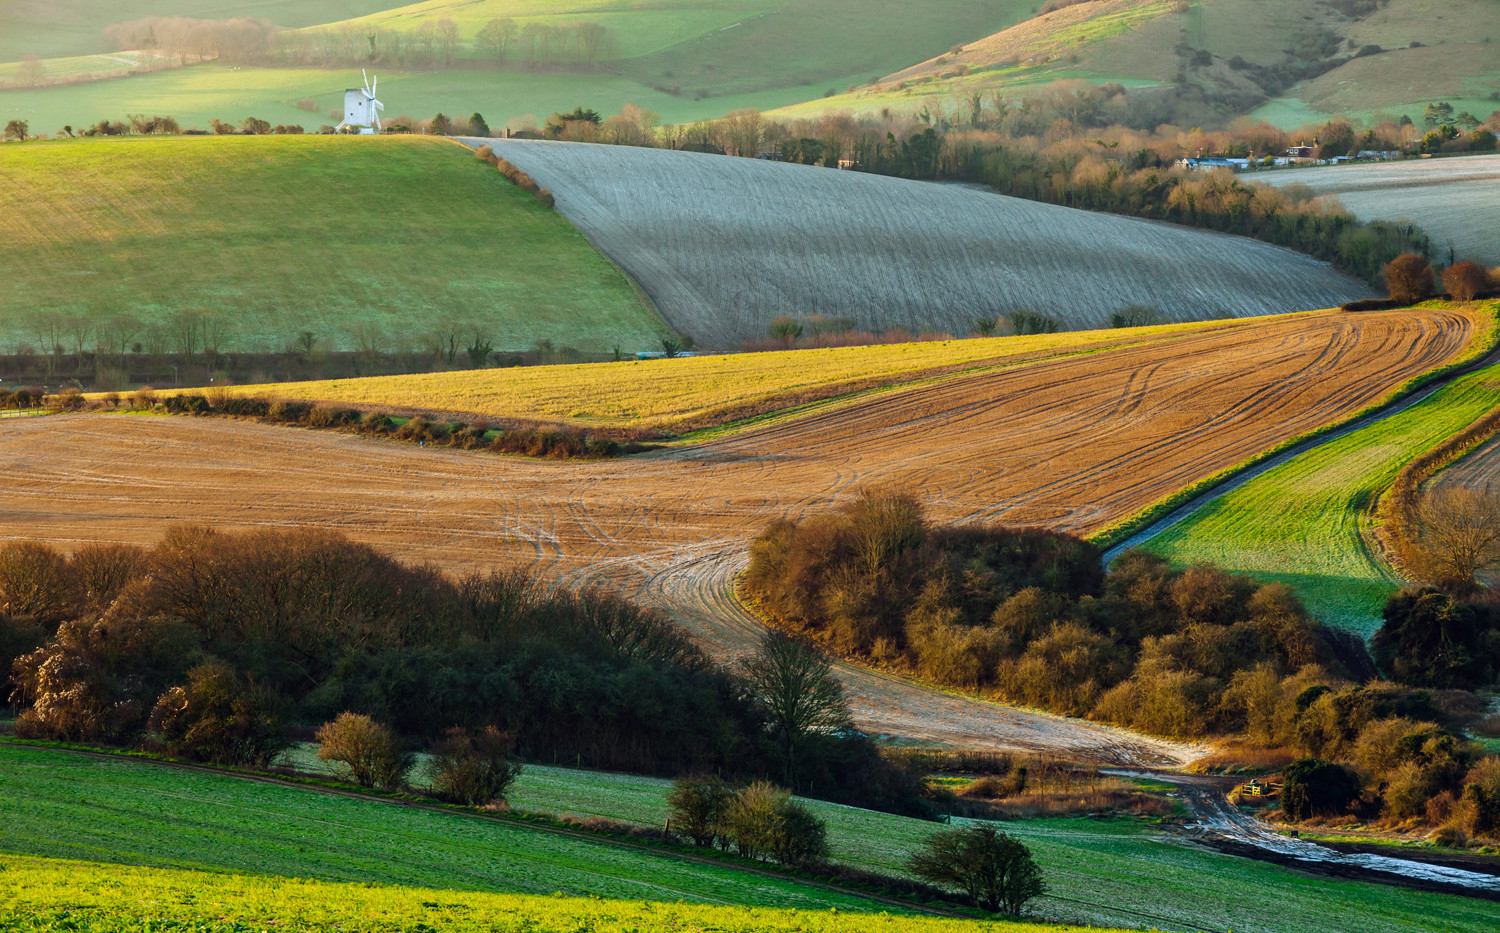 South Downs near Lewes, East Sussex, 19th January 2020